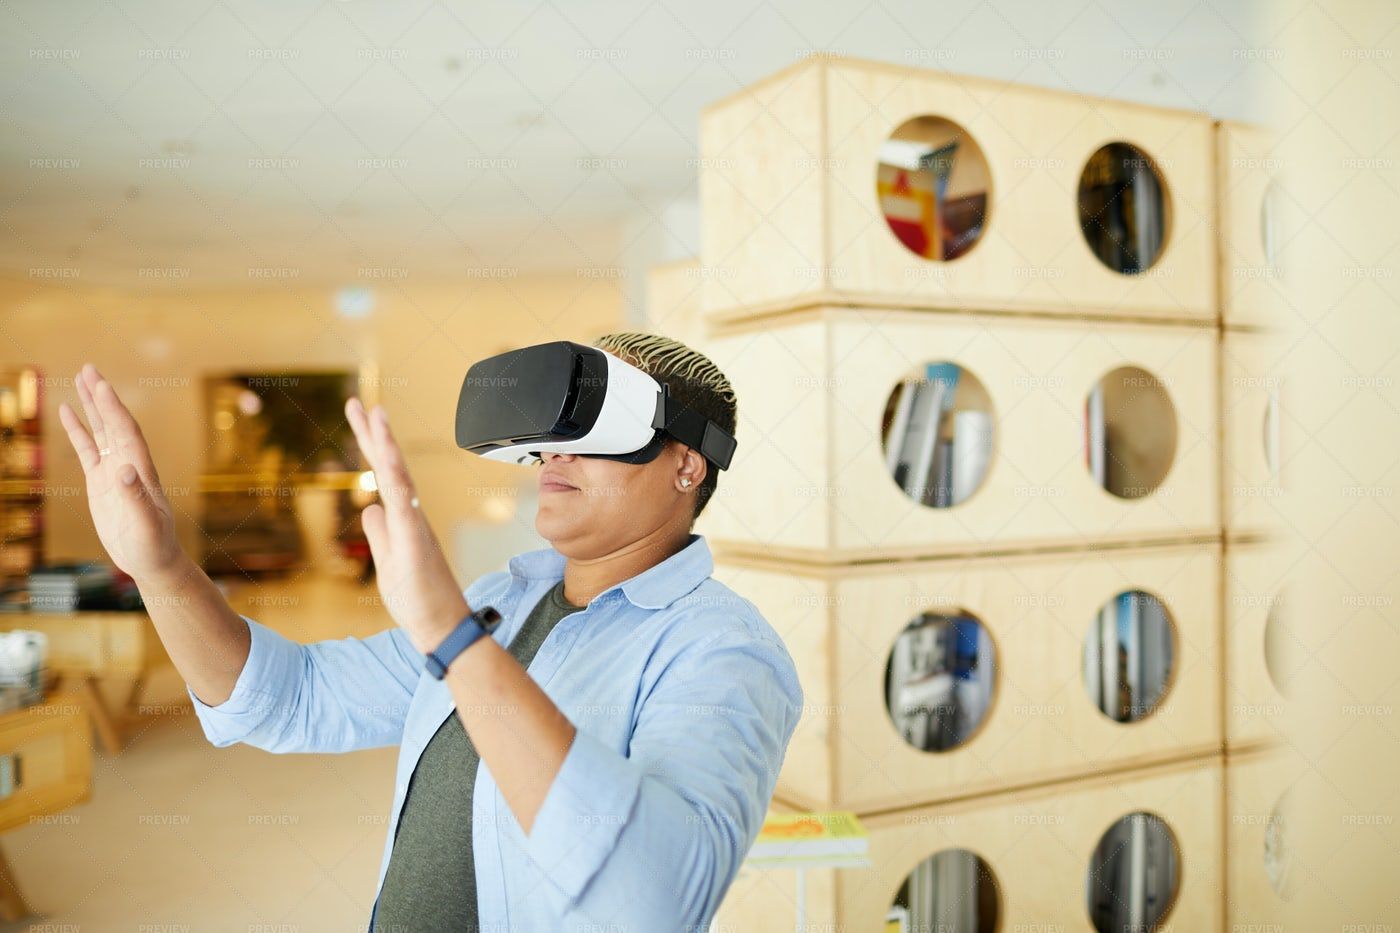 Studying Virtual World In...: Stock Photos